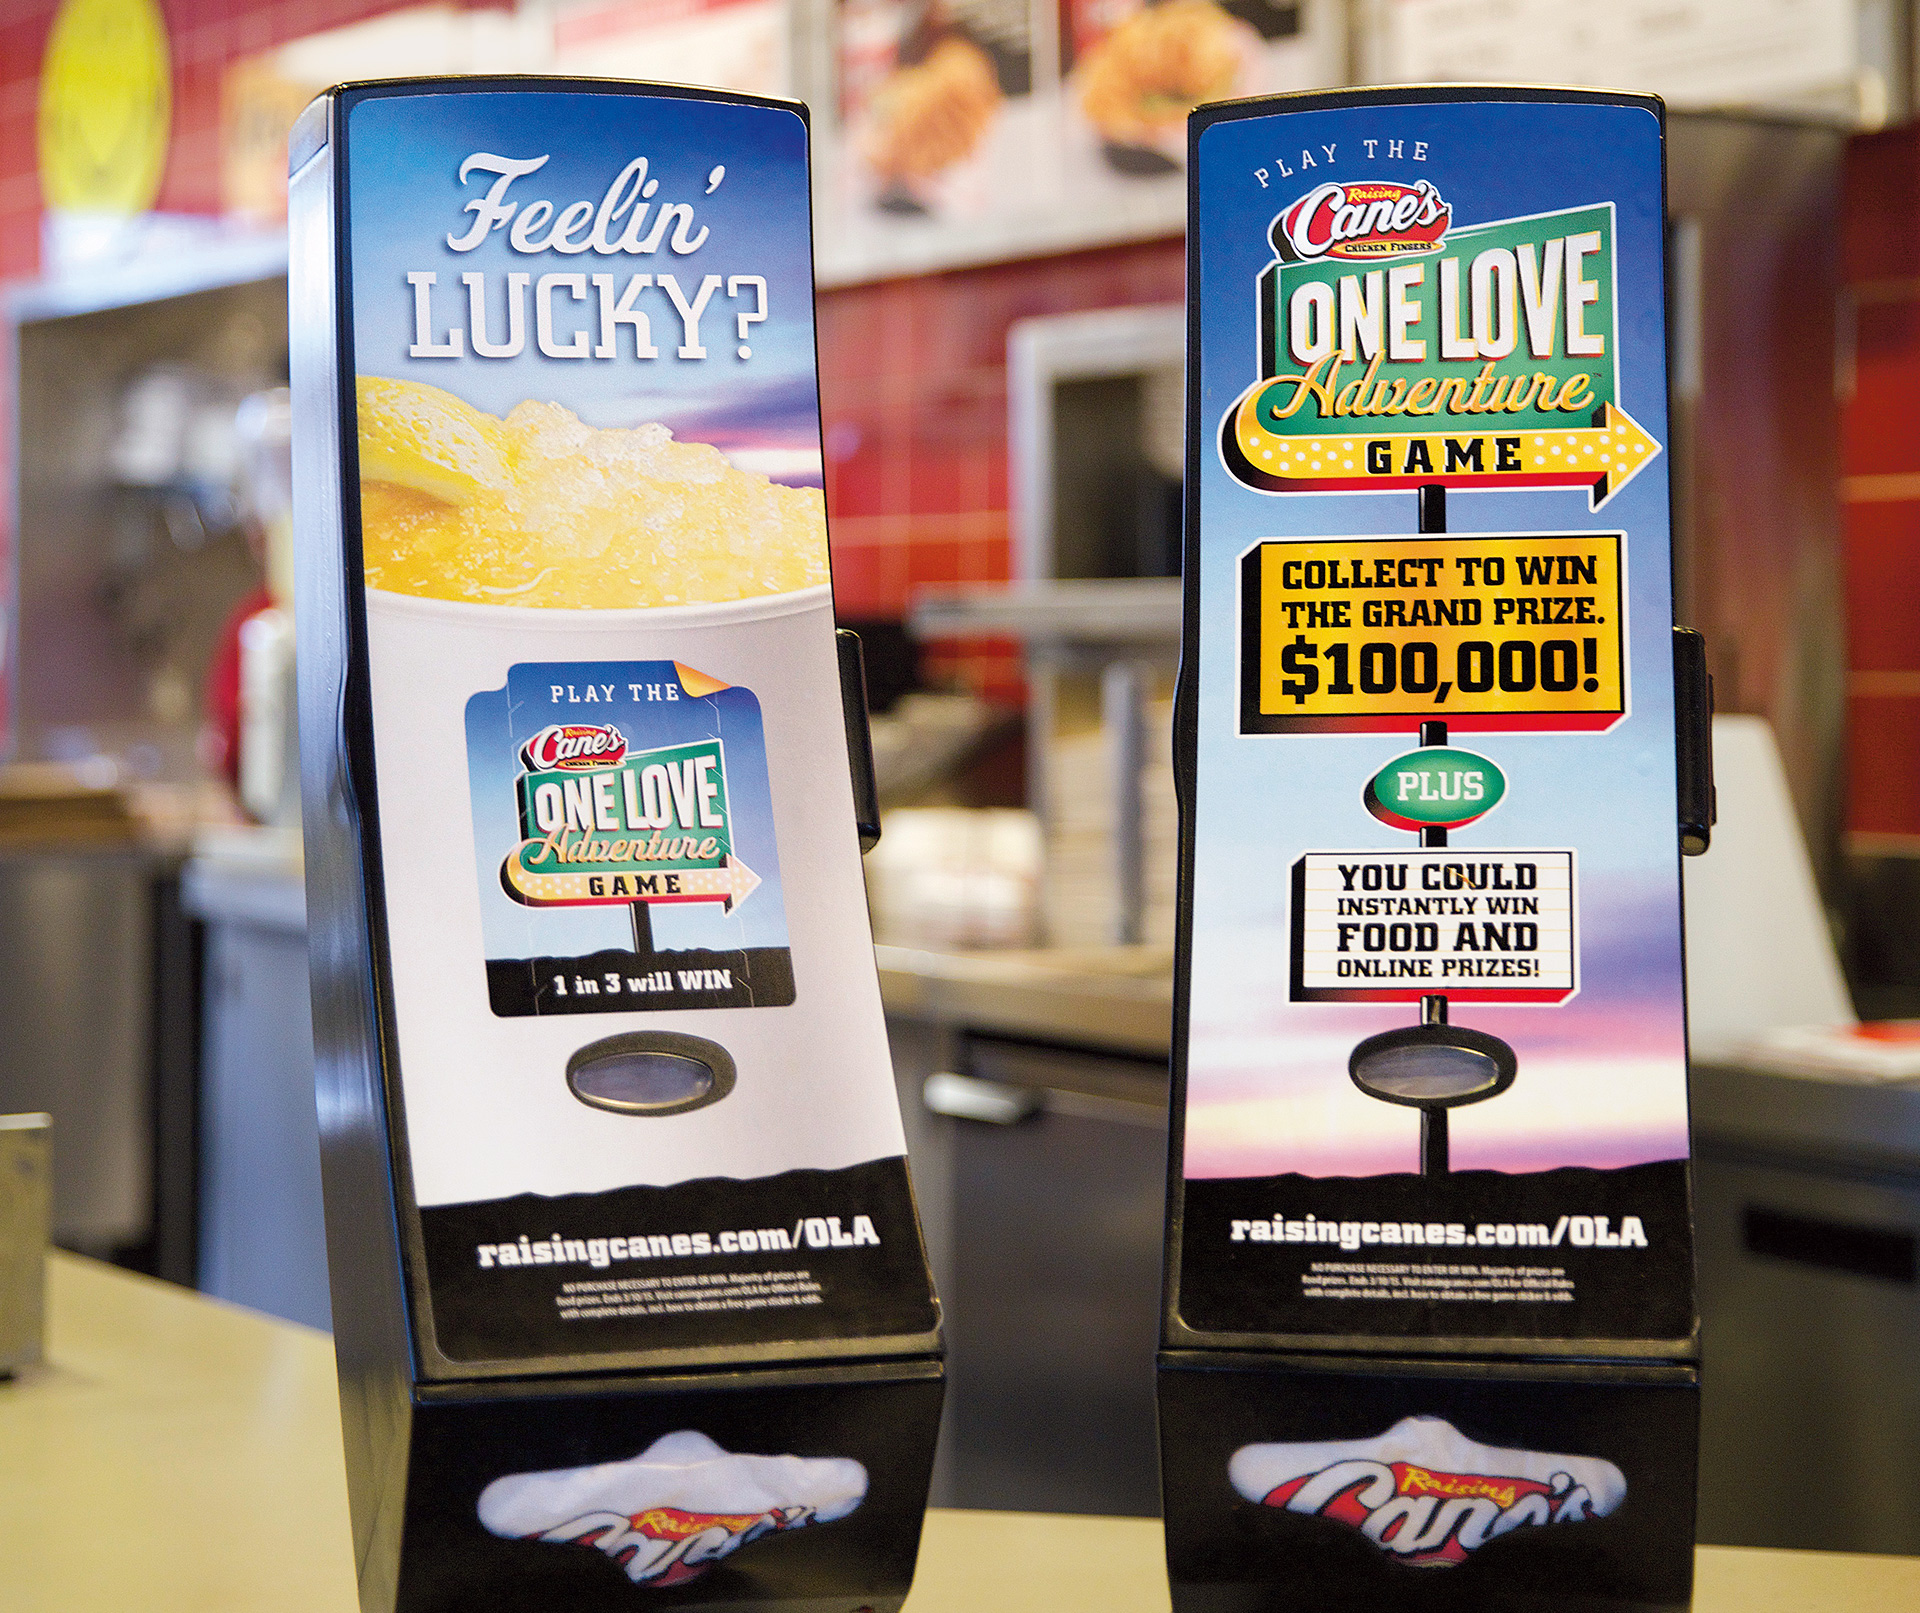 Raising Cane's One Love Adventure